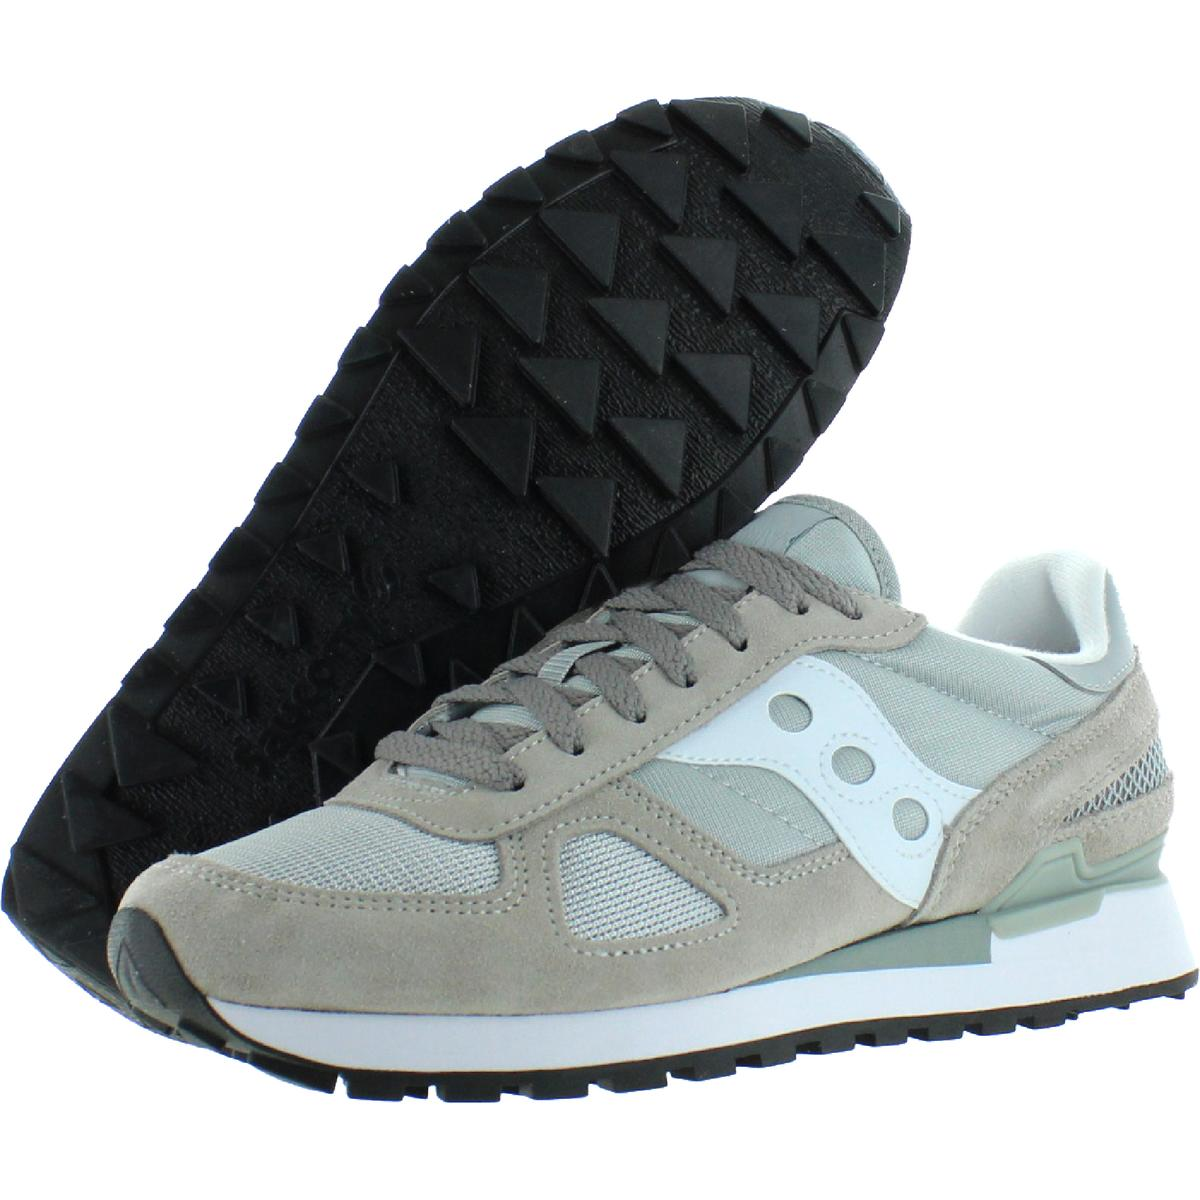 Saucony-Mens-Shadow-Original-Trainers-Suede-Comfort-Sneakers-Shoes-BHFO-0431 miniatuur 21